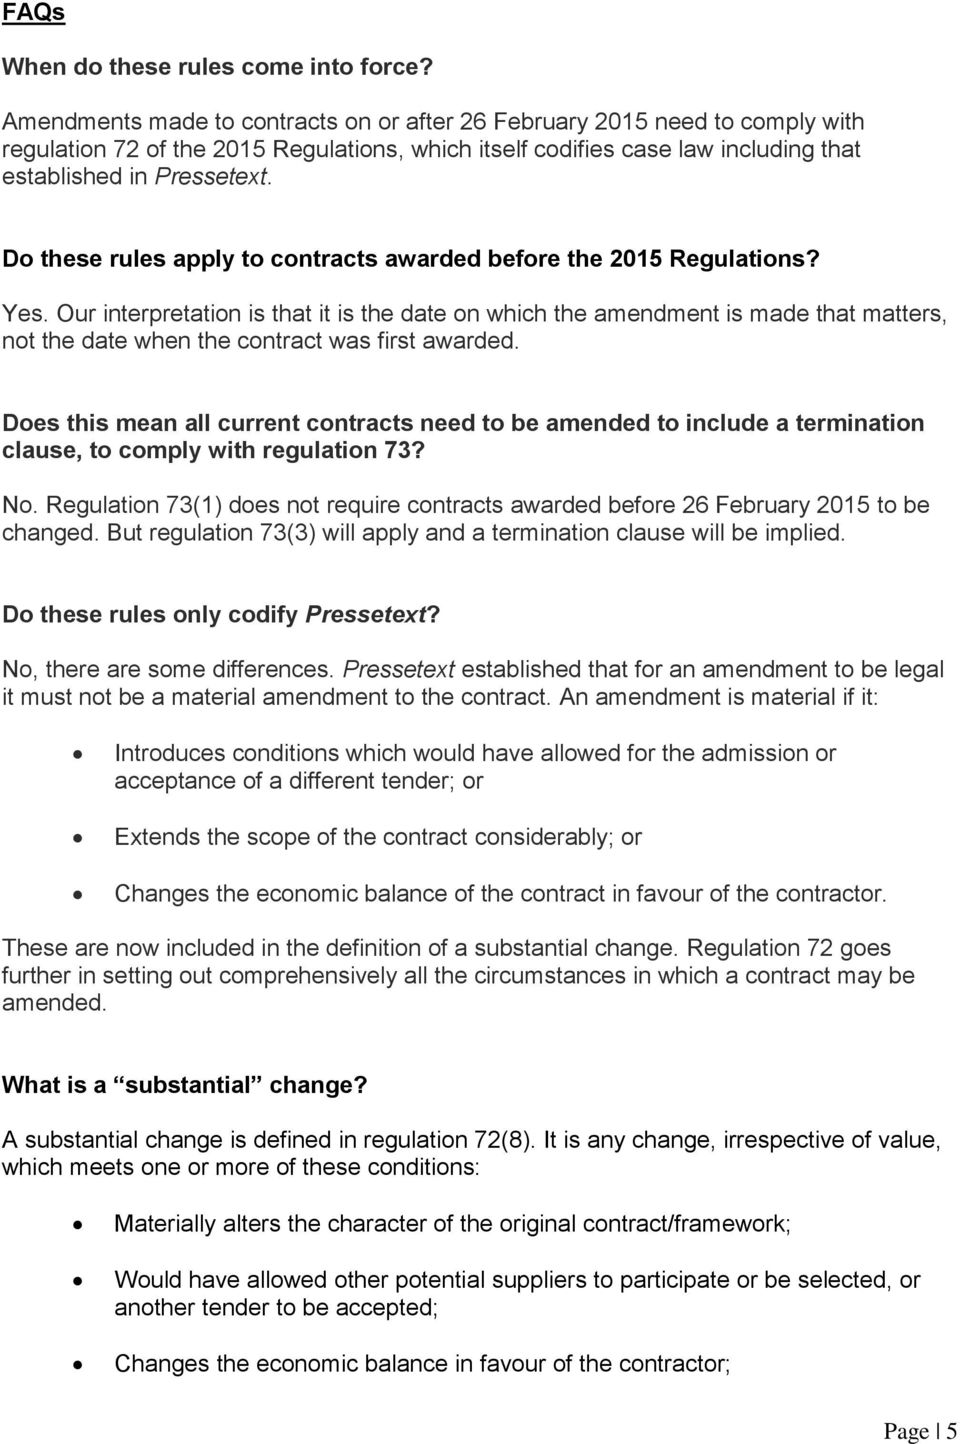 Do these rules apply to contracts awarded before the 2015 Regulations? Yes.